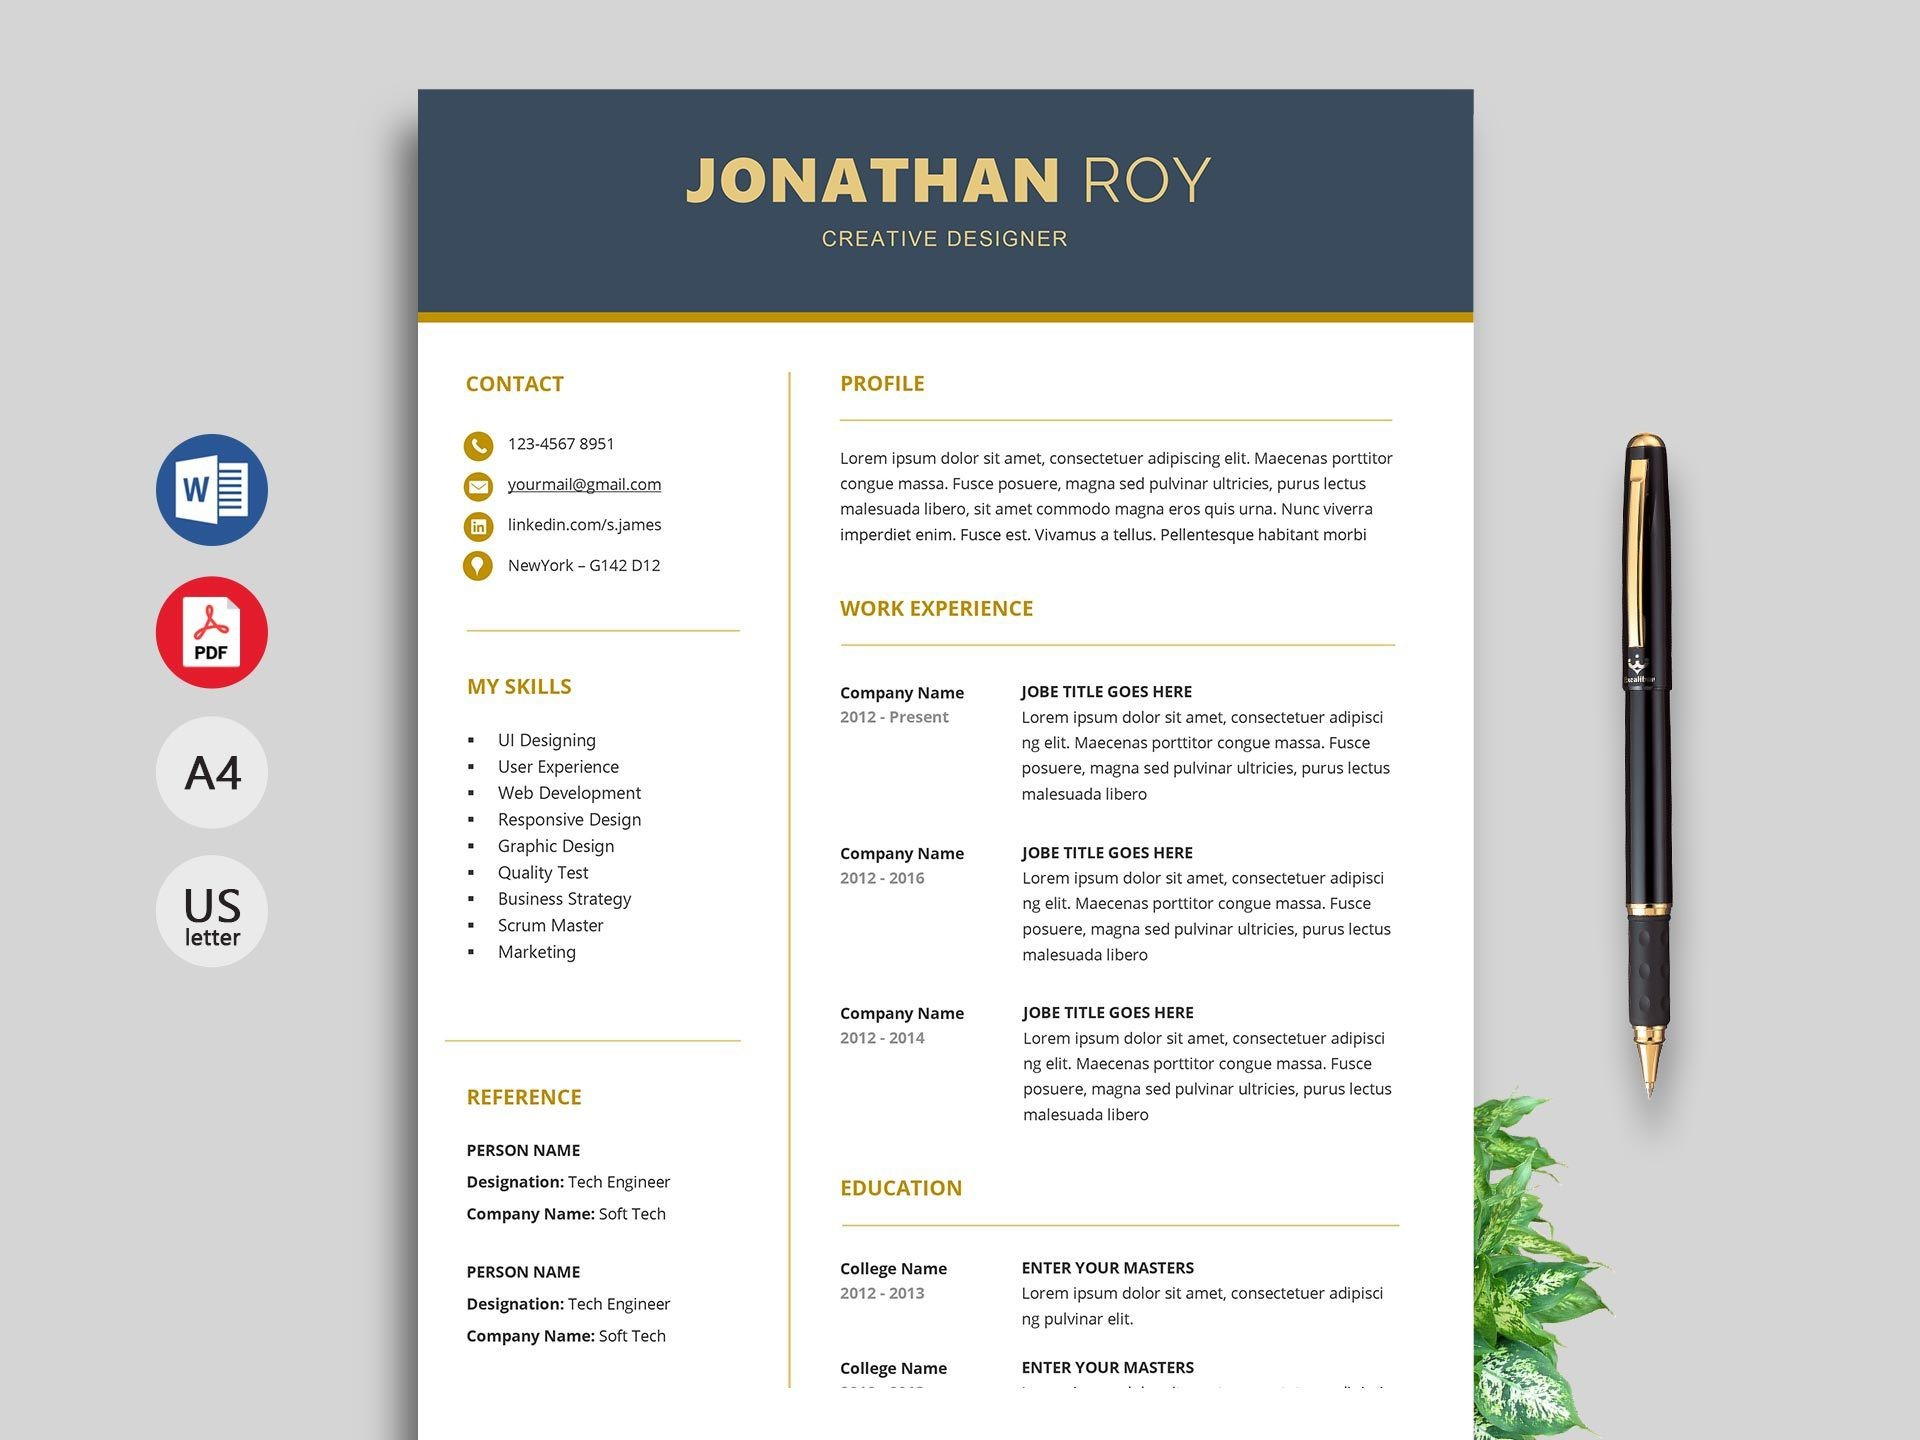 004 Astounding Free Resume Template To Download Sample  Professional Format In M Word 2007 For Civil Engineer1920